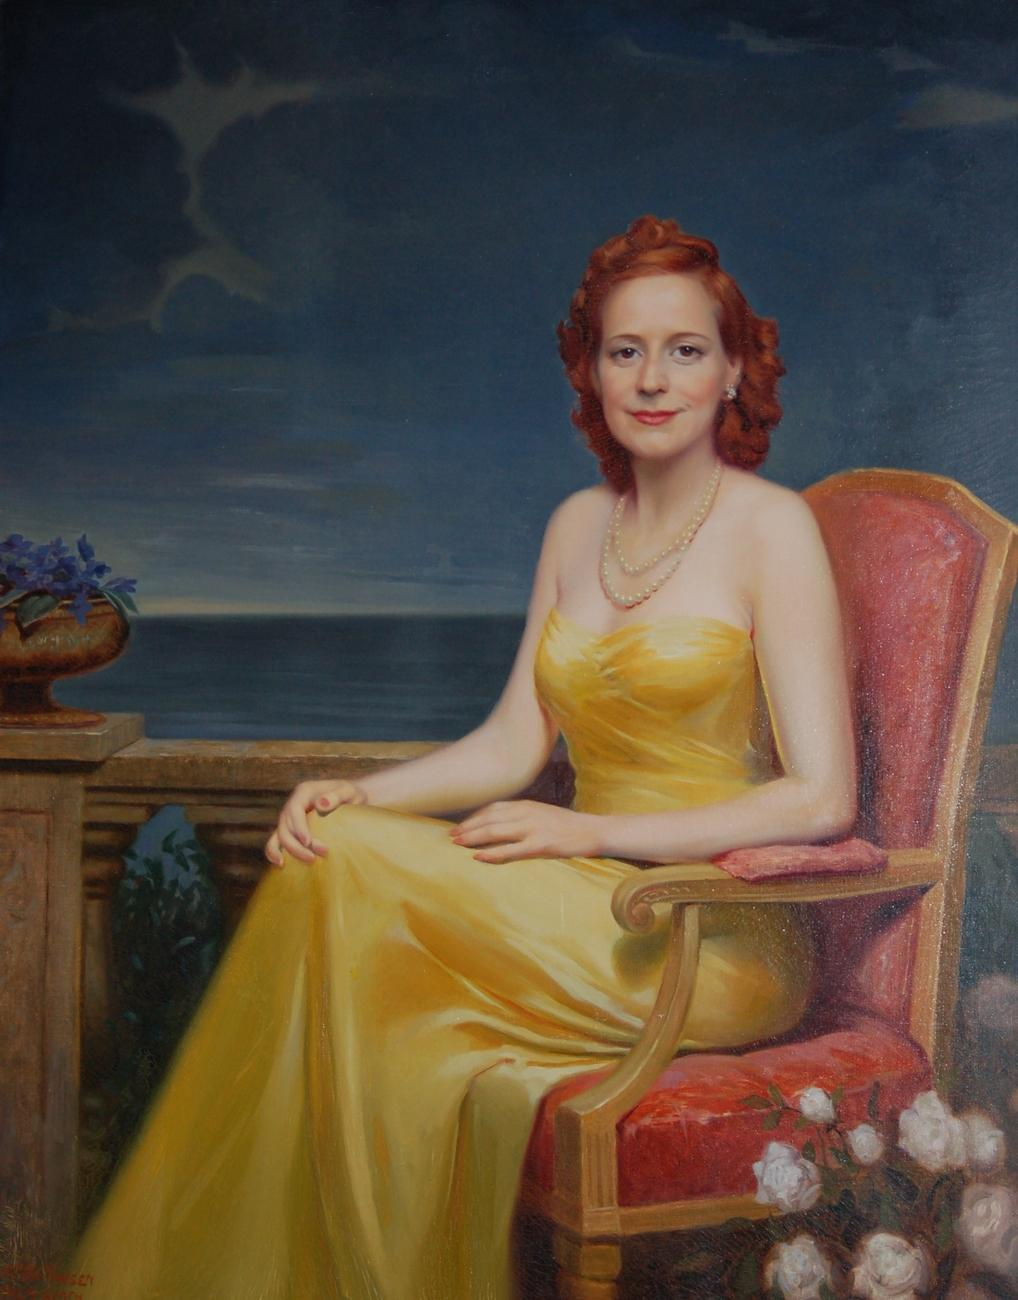 F. C. Von Hausen, The Lady With Red Hair, oil on canvas, 40 by 50 inches.